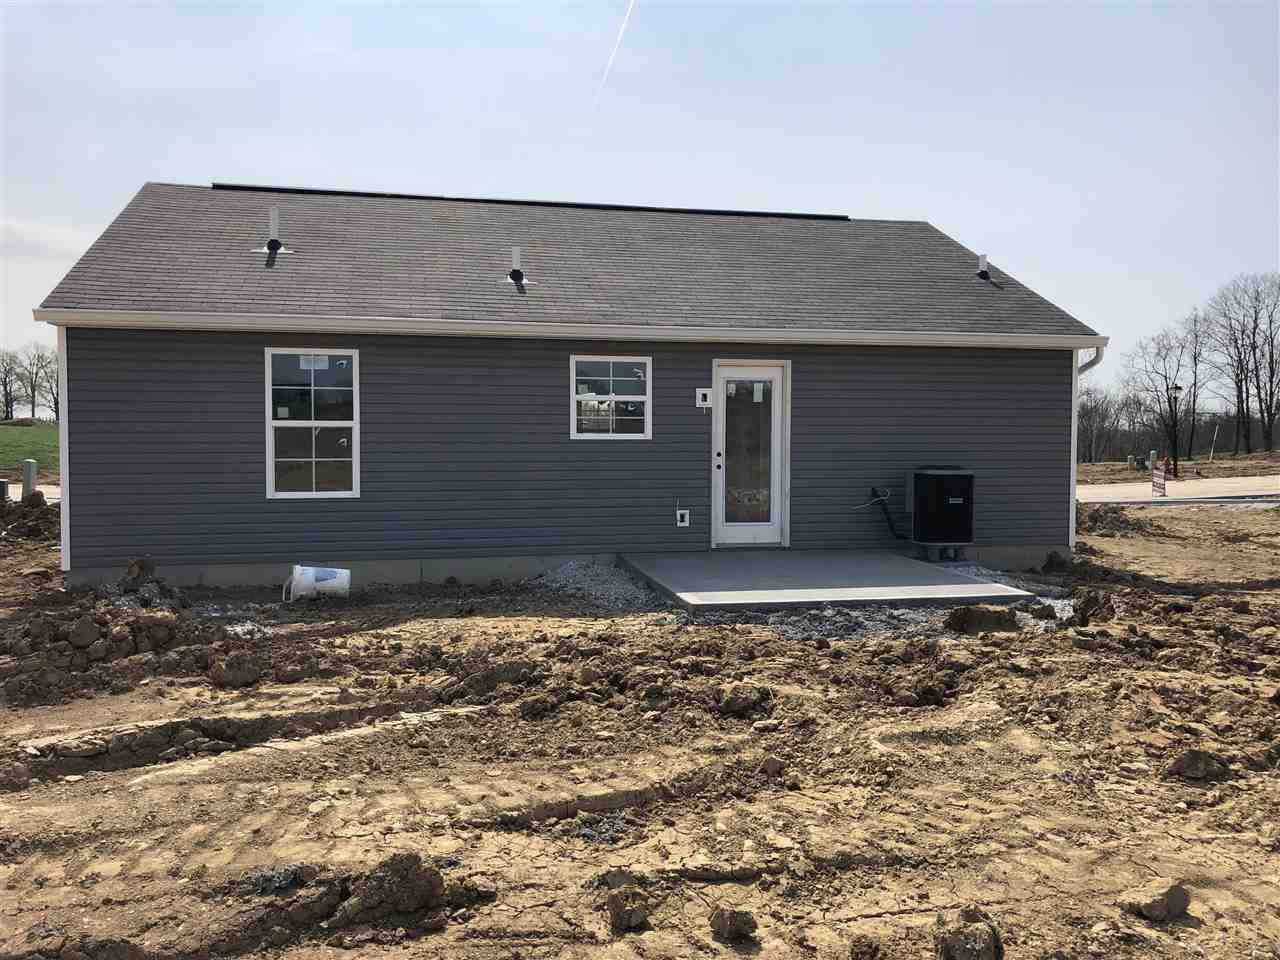 Photo 3 for 1175 Gemstone Pointe Dr, LOT 1 Walton, KY 41094